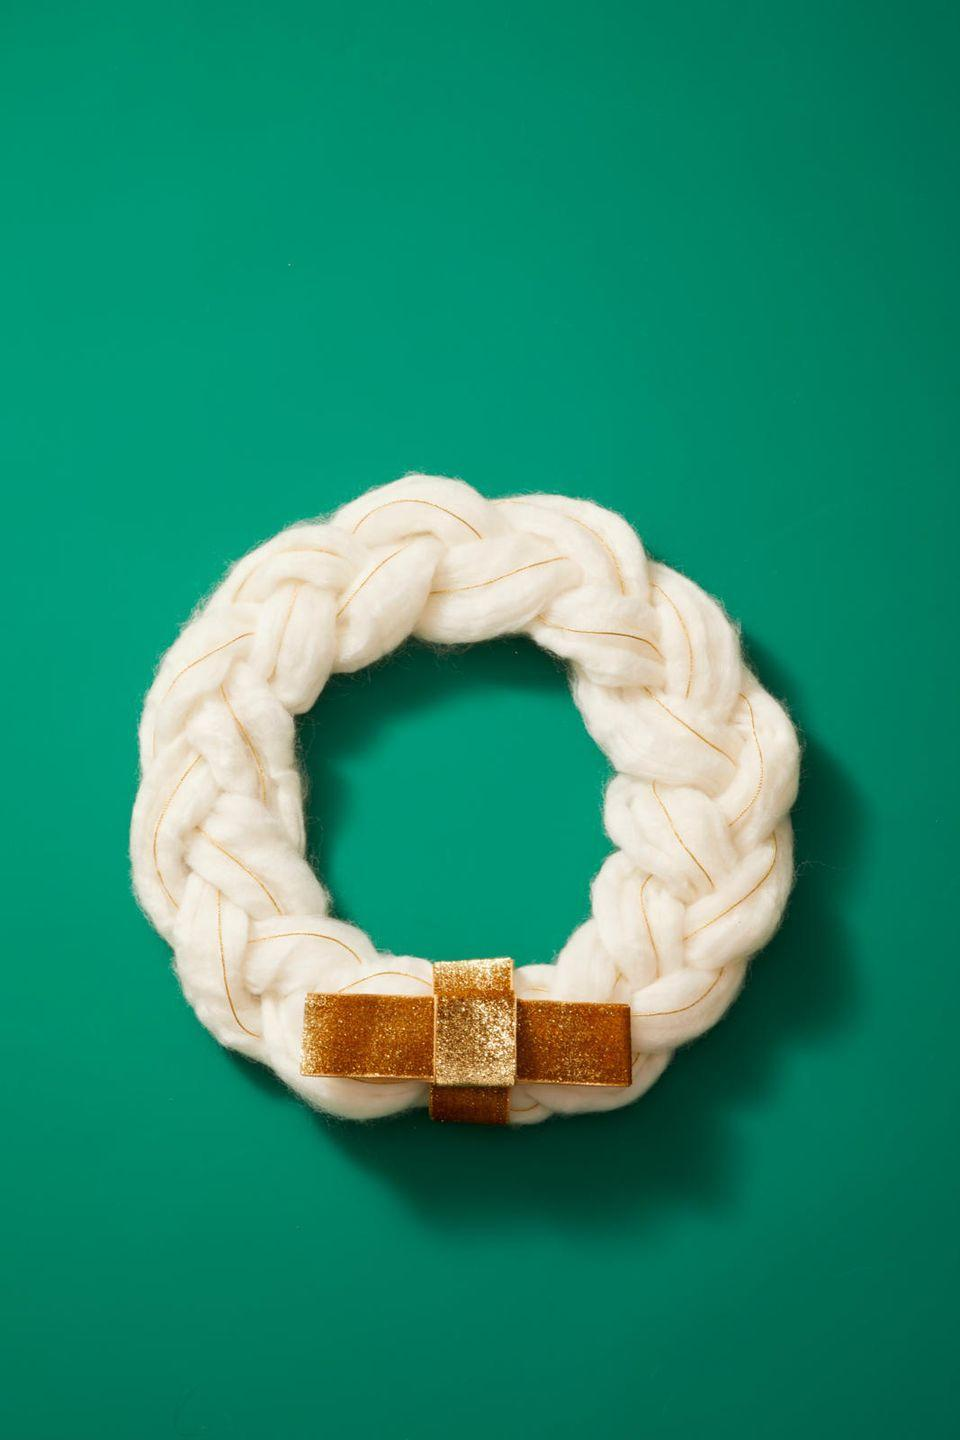 """<p>This craft is simple and sweet, and you can use up your extra yarn and ribbon while you make it. Just separate <a href=""""https://www.amazon.com/Bernat-Softee-Chunky-Gauge-Natural/dp/B007RL3ACK?tag=syn-yahoo-20&ascsubtag=%5Bartid%7C10055.g.2996%5Bsrc%7Cyahoo-us"""" rel=""""nofollow noopener"""" target=""""_blank"""" data-ylk=""""slk:the yarn"""" class=""""link rapid-noclick-resp"""">the yarn</a> into three equal segments, and then add a thin ribbon to each one. As you braid, make sure the ribbon stays in the center. Complete the braid by tucking the ends underneath the wreath, and secure them with a small amount of hot glue. Then, glue the braided yarn onto the <a href=""""https://www.amazon.com/Green-Wire-Wreath-Form-Diameter/dp/B01G465SB4?tag=syn-yahoo-20&ascsubtag=%5Bartid%7C10055.g.2996%5Bsrc%7Cyahoo-us"""" rel=""""nofollow noopener"""" target=""""_blank"""" data-ylk=""""slk:wreath form"""" class=""""link rapid-noclick-resp"""">wreath form</a>, and tie a bow around the bottom.</p>"""